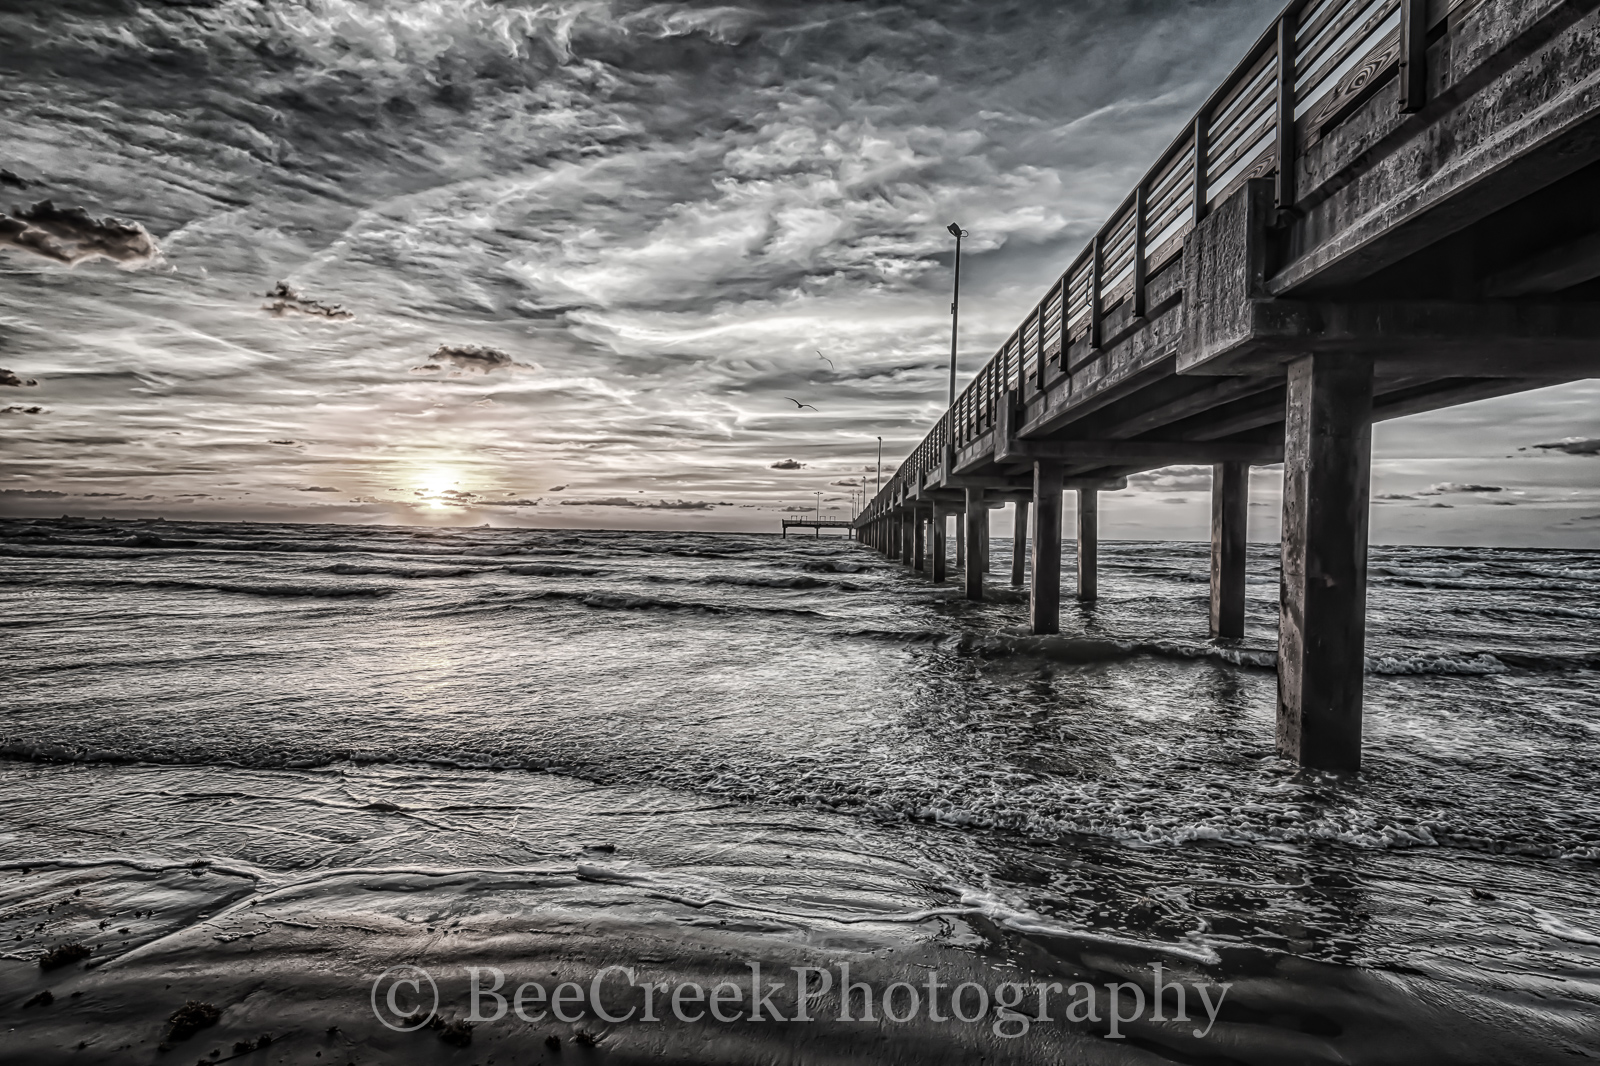 Sunrise, beach, black and white, clouds, coast, coastal, fishing pier, gulf, sand, surf, texas, texature, wooden, photo